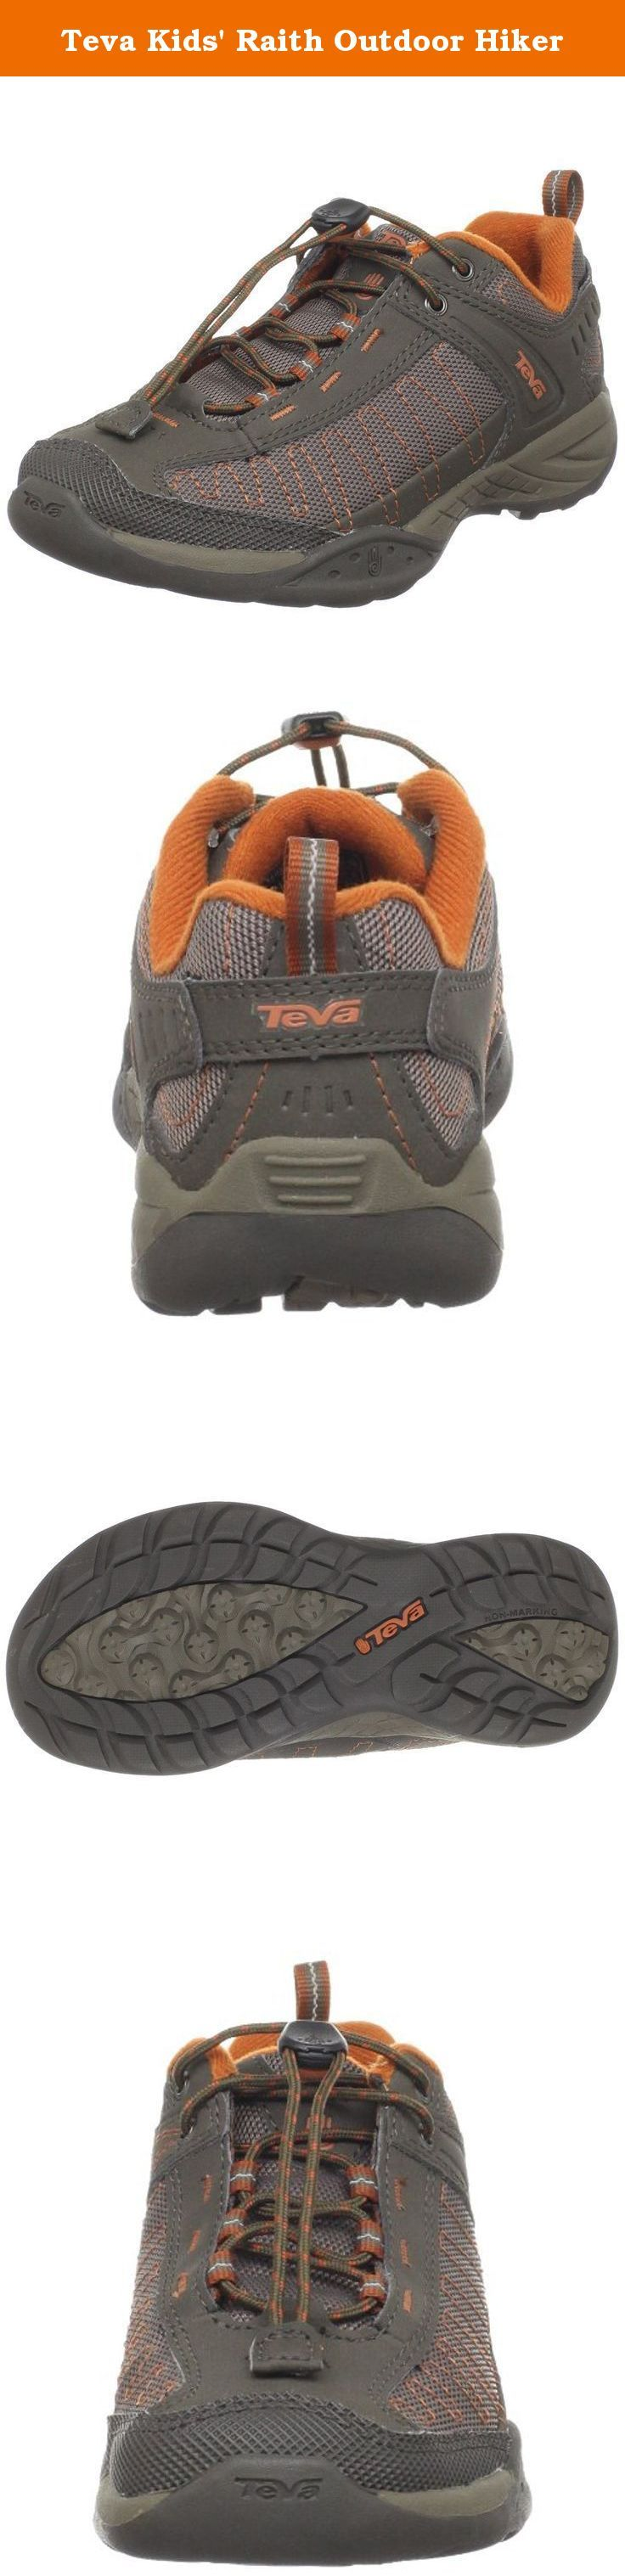 Teva Kids' Raith Outdoor Hiker. Boys are wild. You know this, we know this. That's why we made the Raith Kids. It's got enough performance features to keep up with the most active boys, and all of the durability that those boys require.